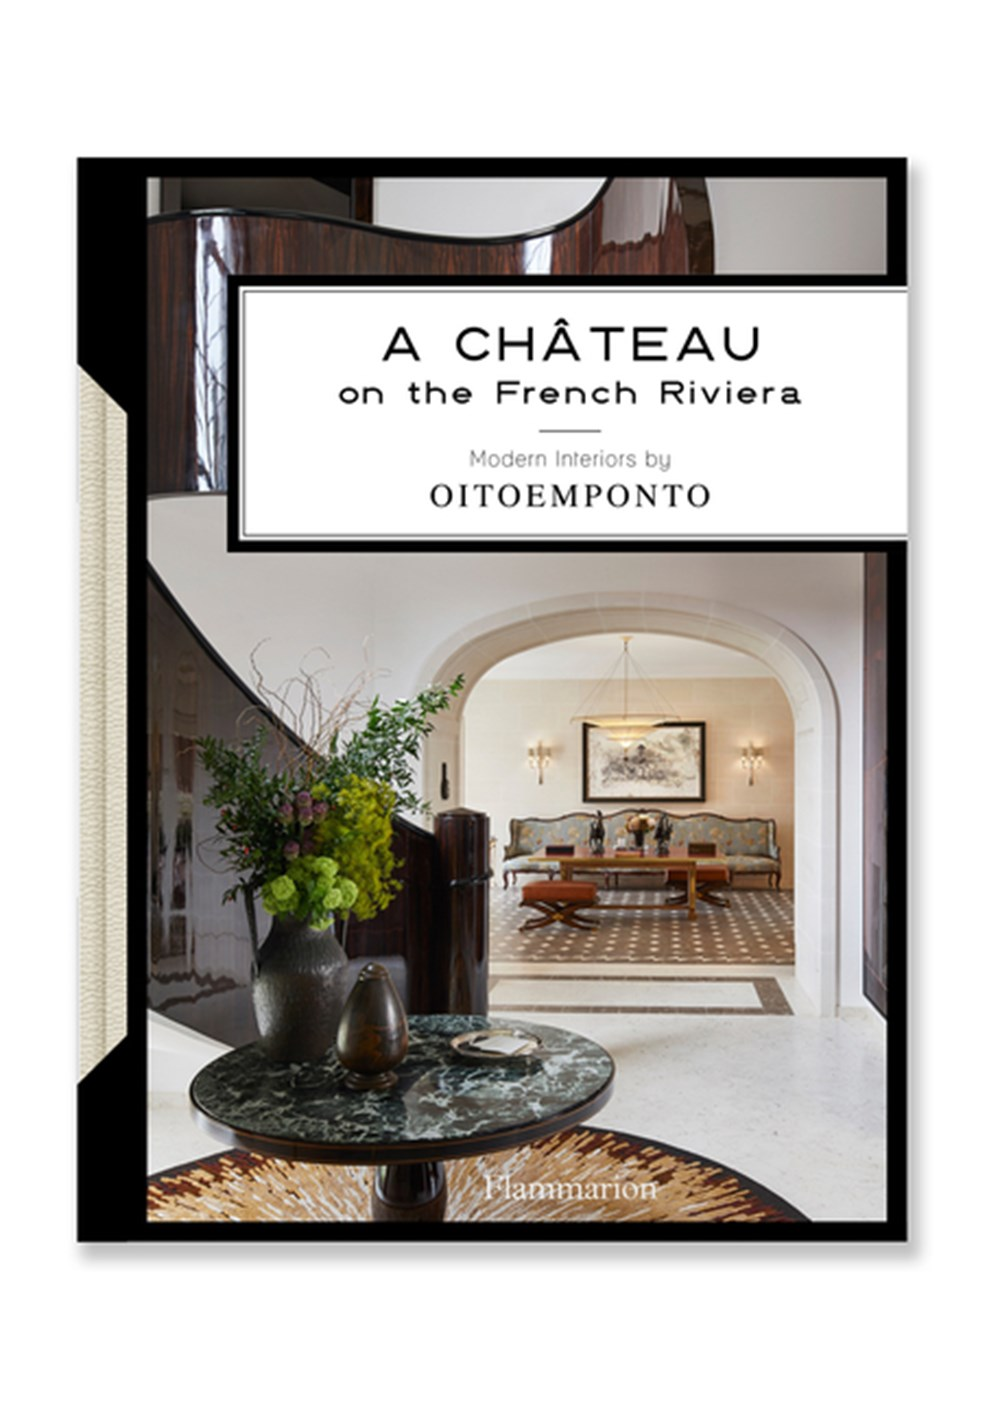 Ch?teau on the French Riviera Modern Interiors by Oitoemponto